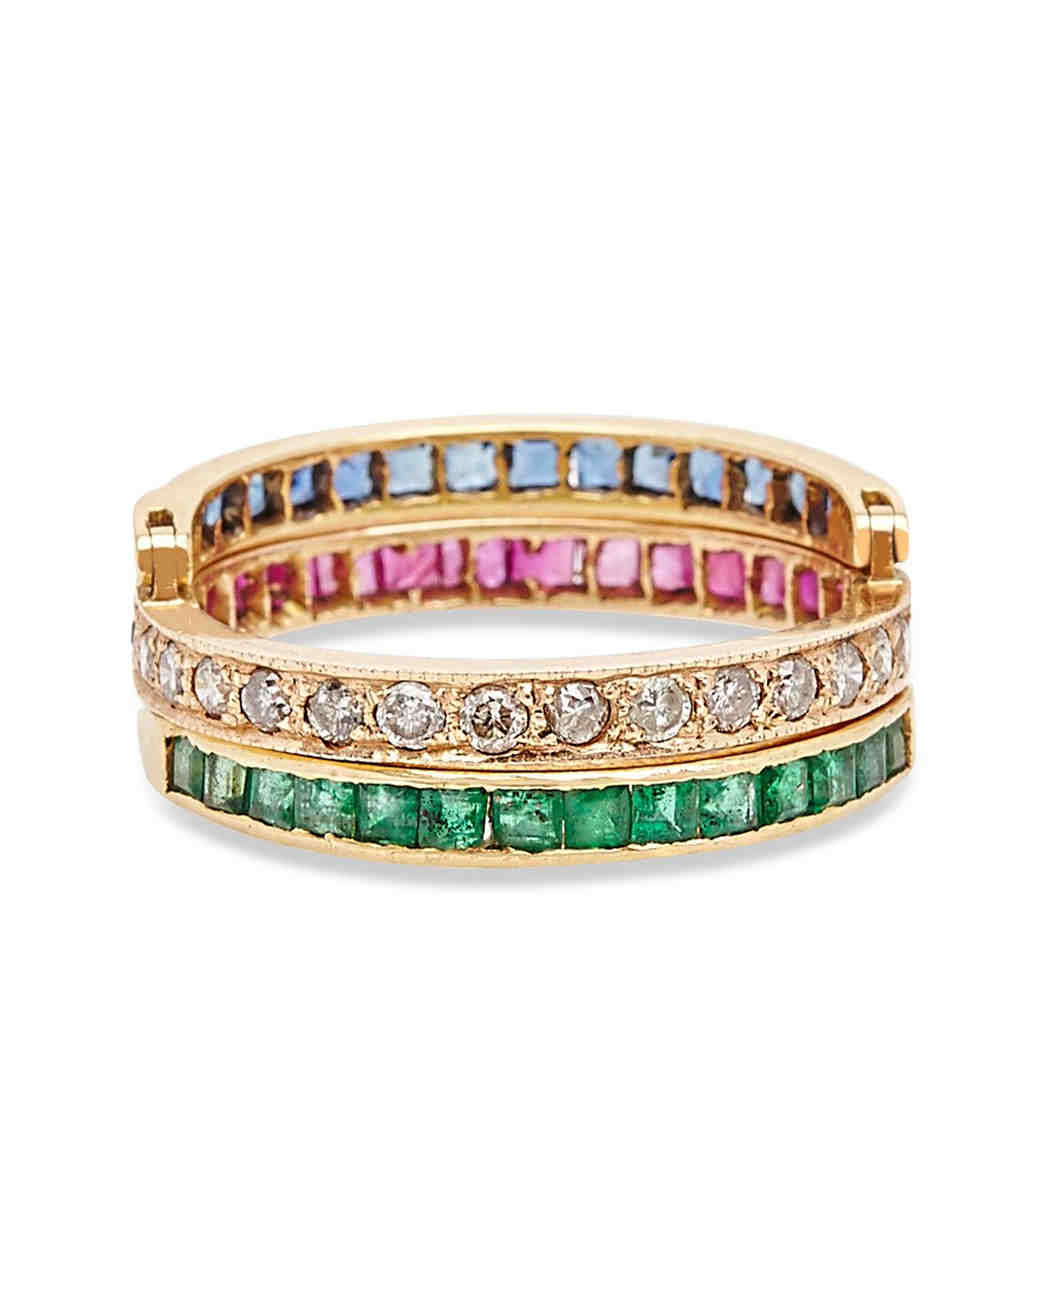 Kirat Young Gold Baguette Flip Ring with Emeralds, Sapphires, Rubies, and Diamonds